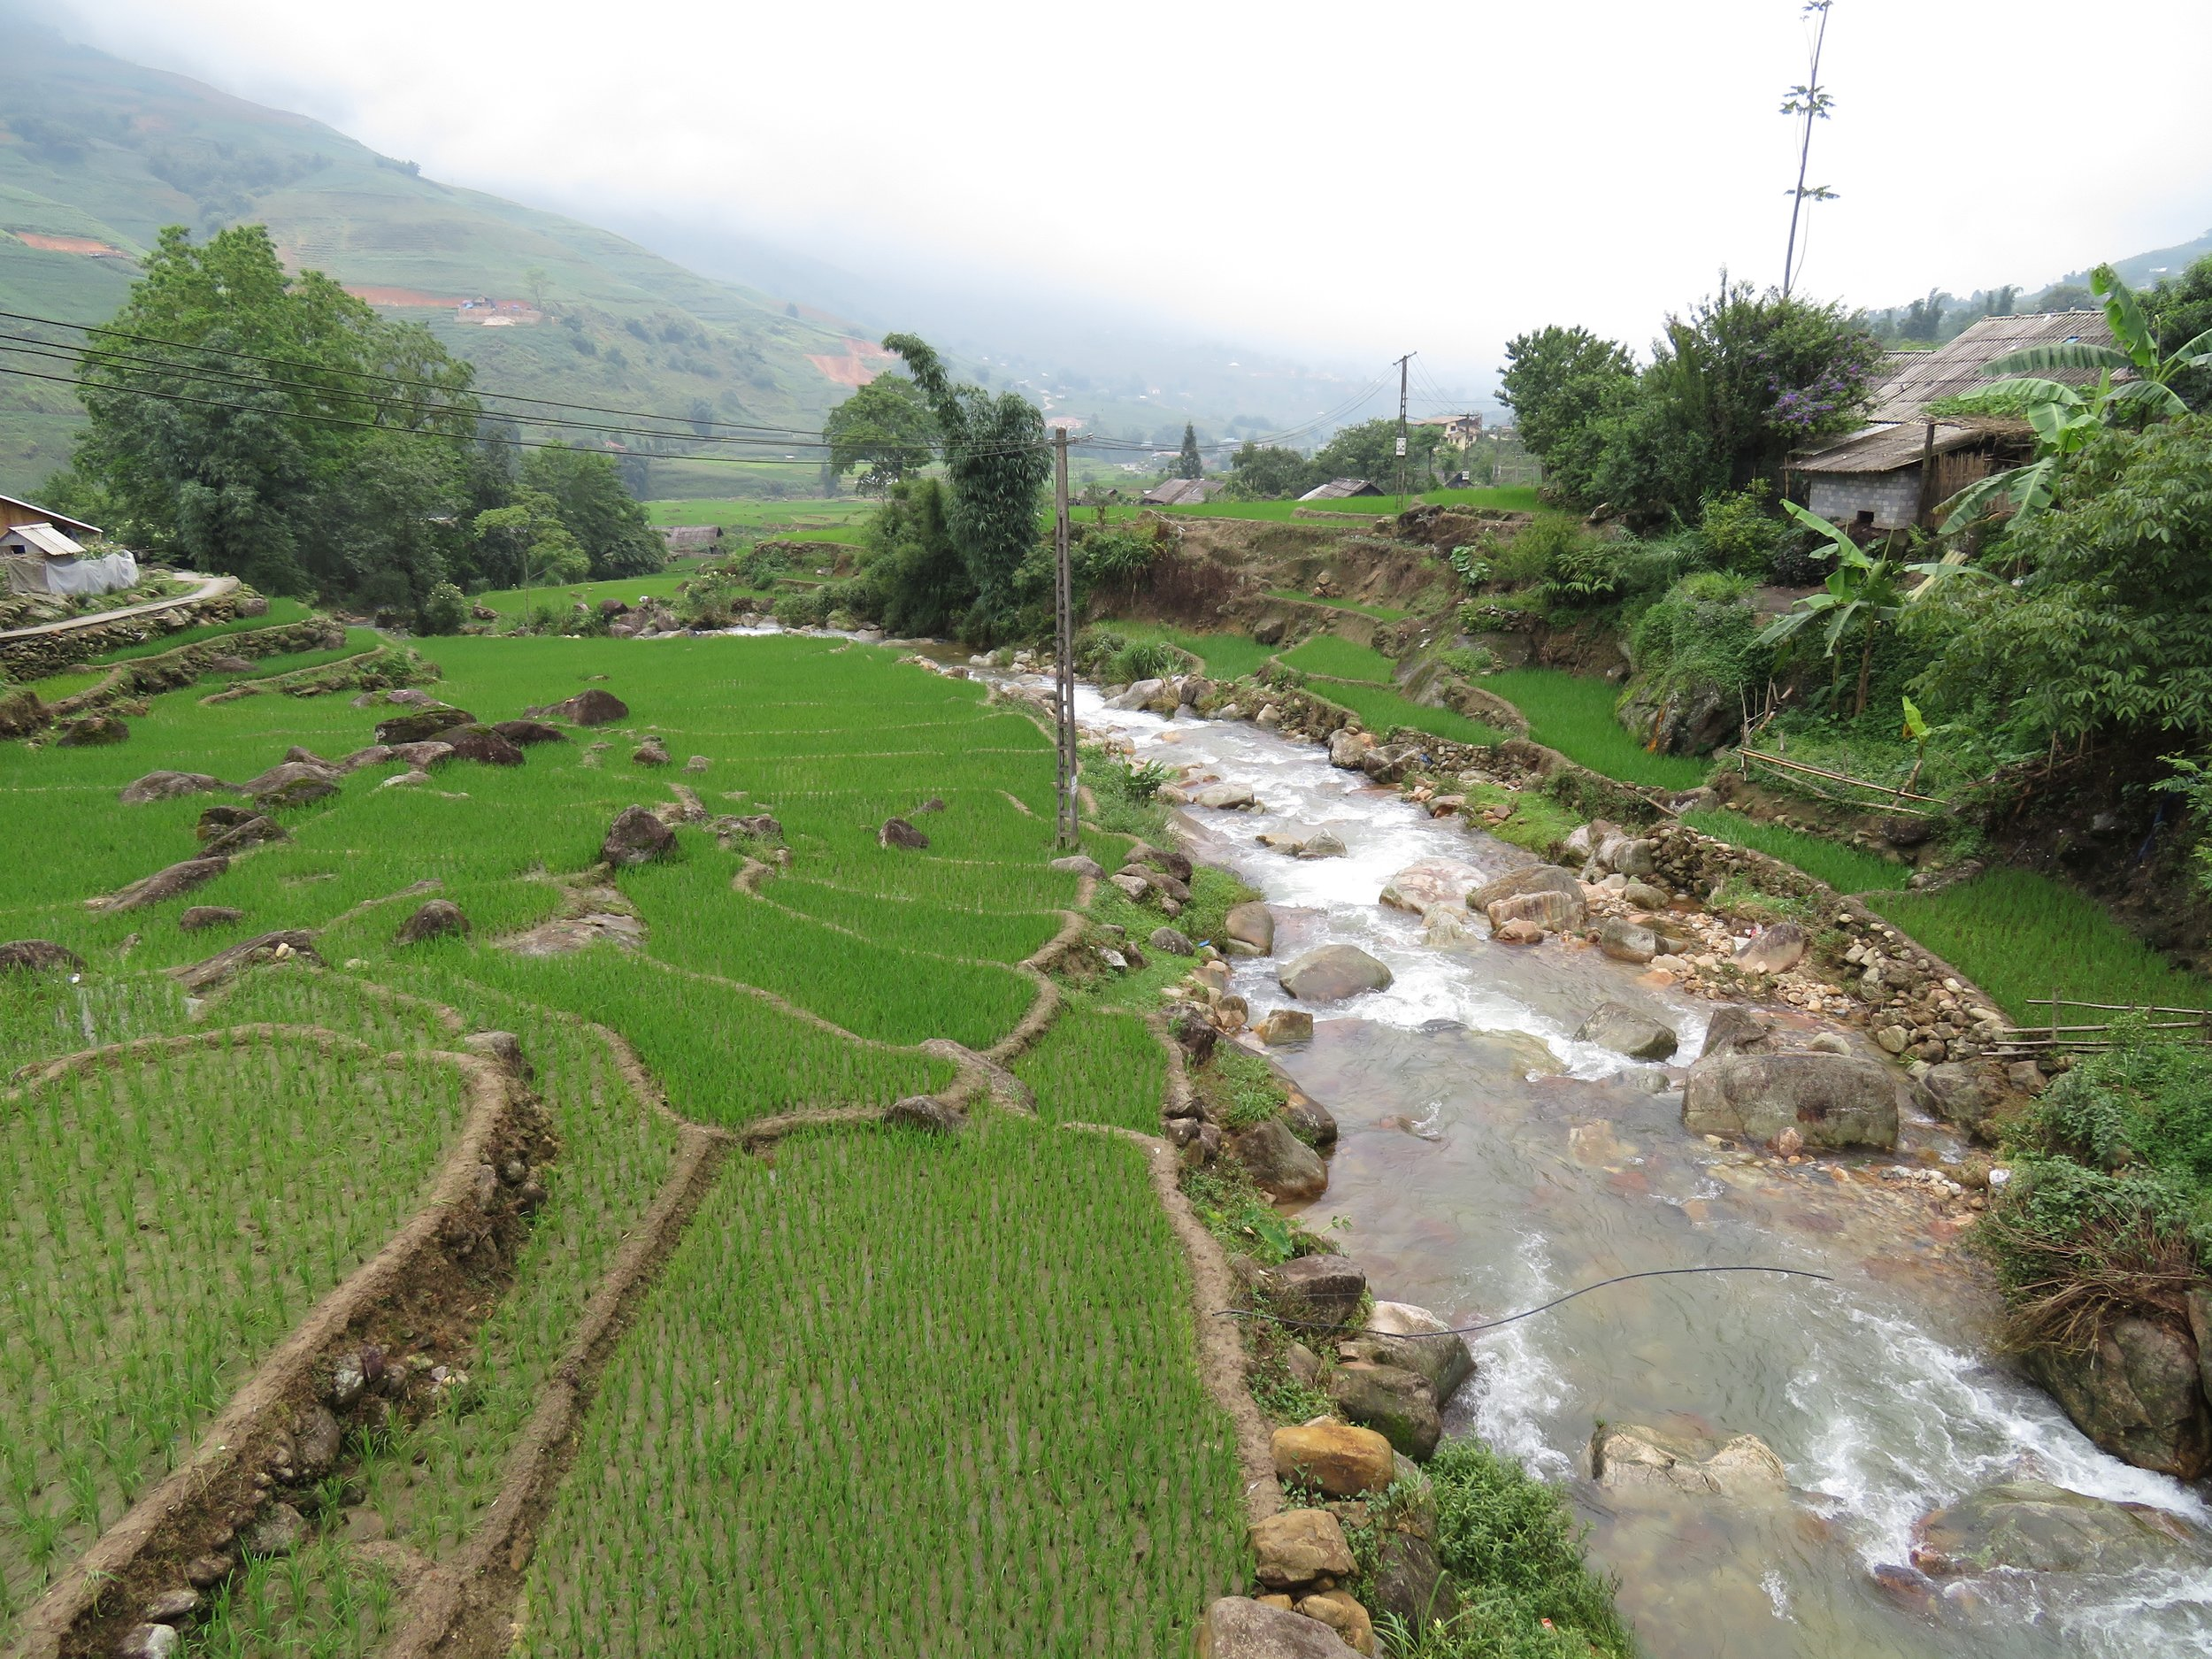 Rice paddies along the hiking route